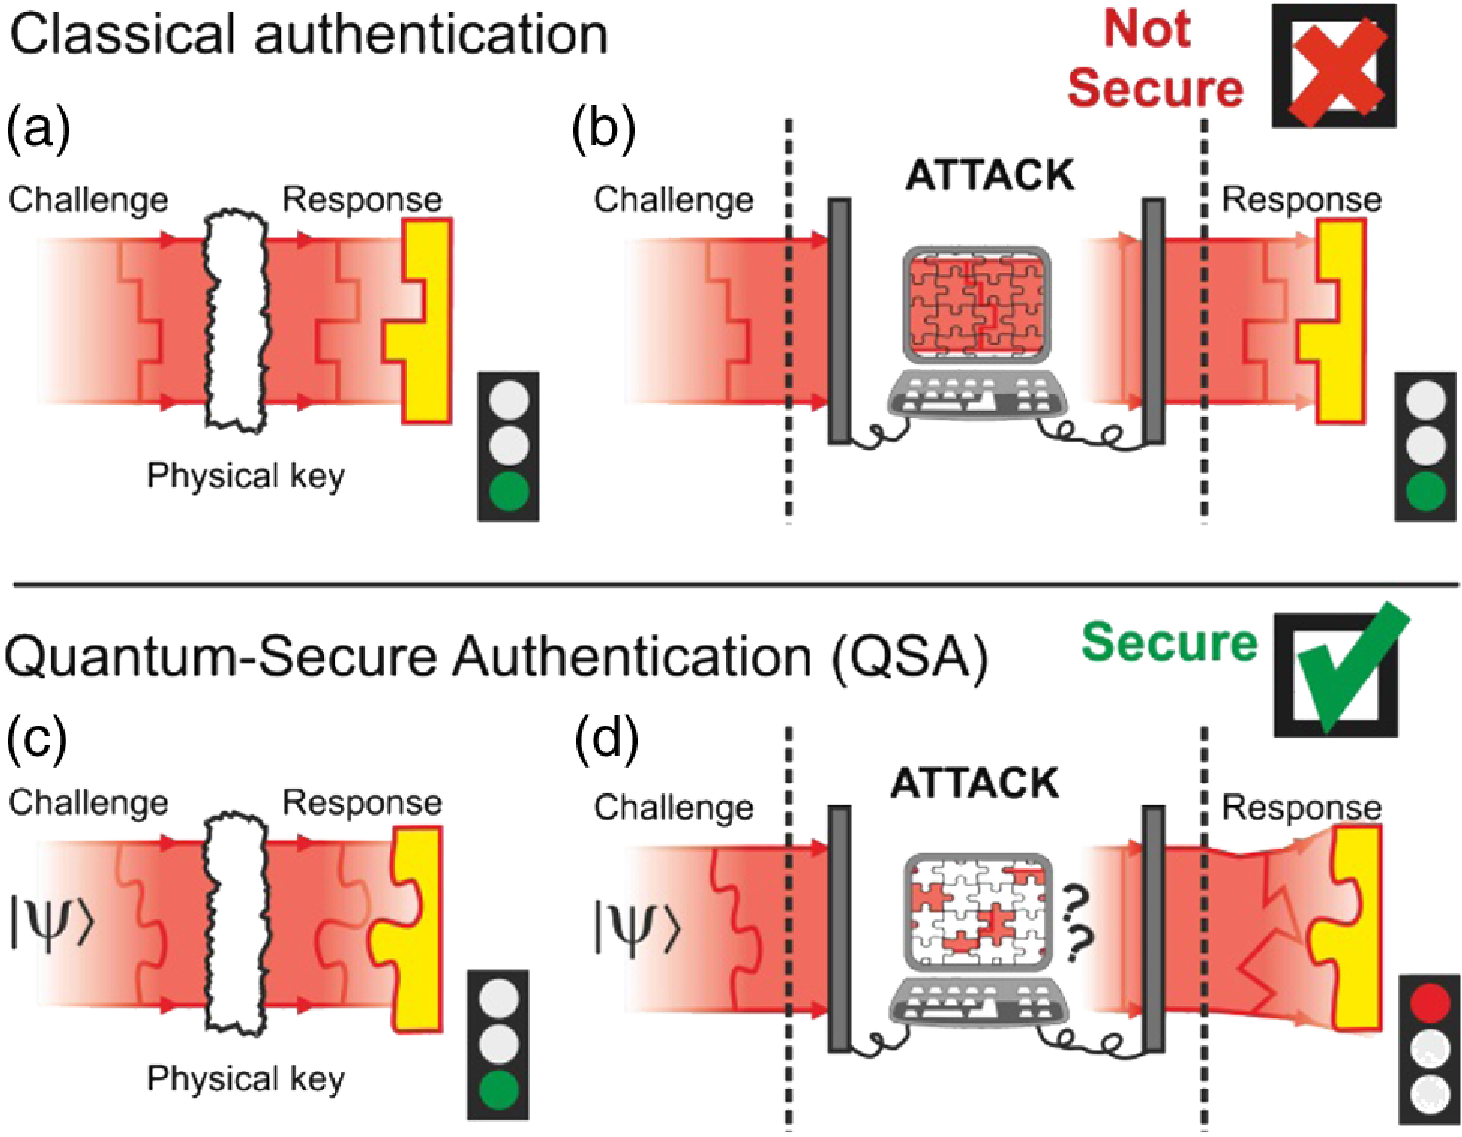 Quantum-Secure Authentication